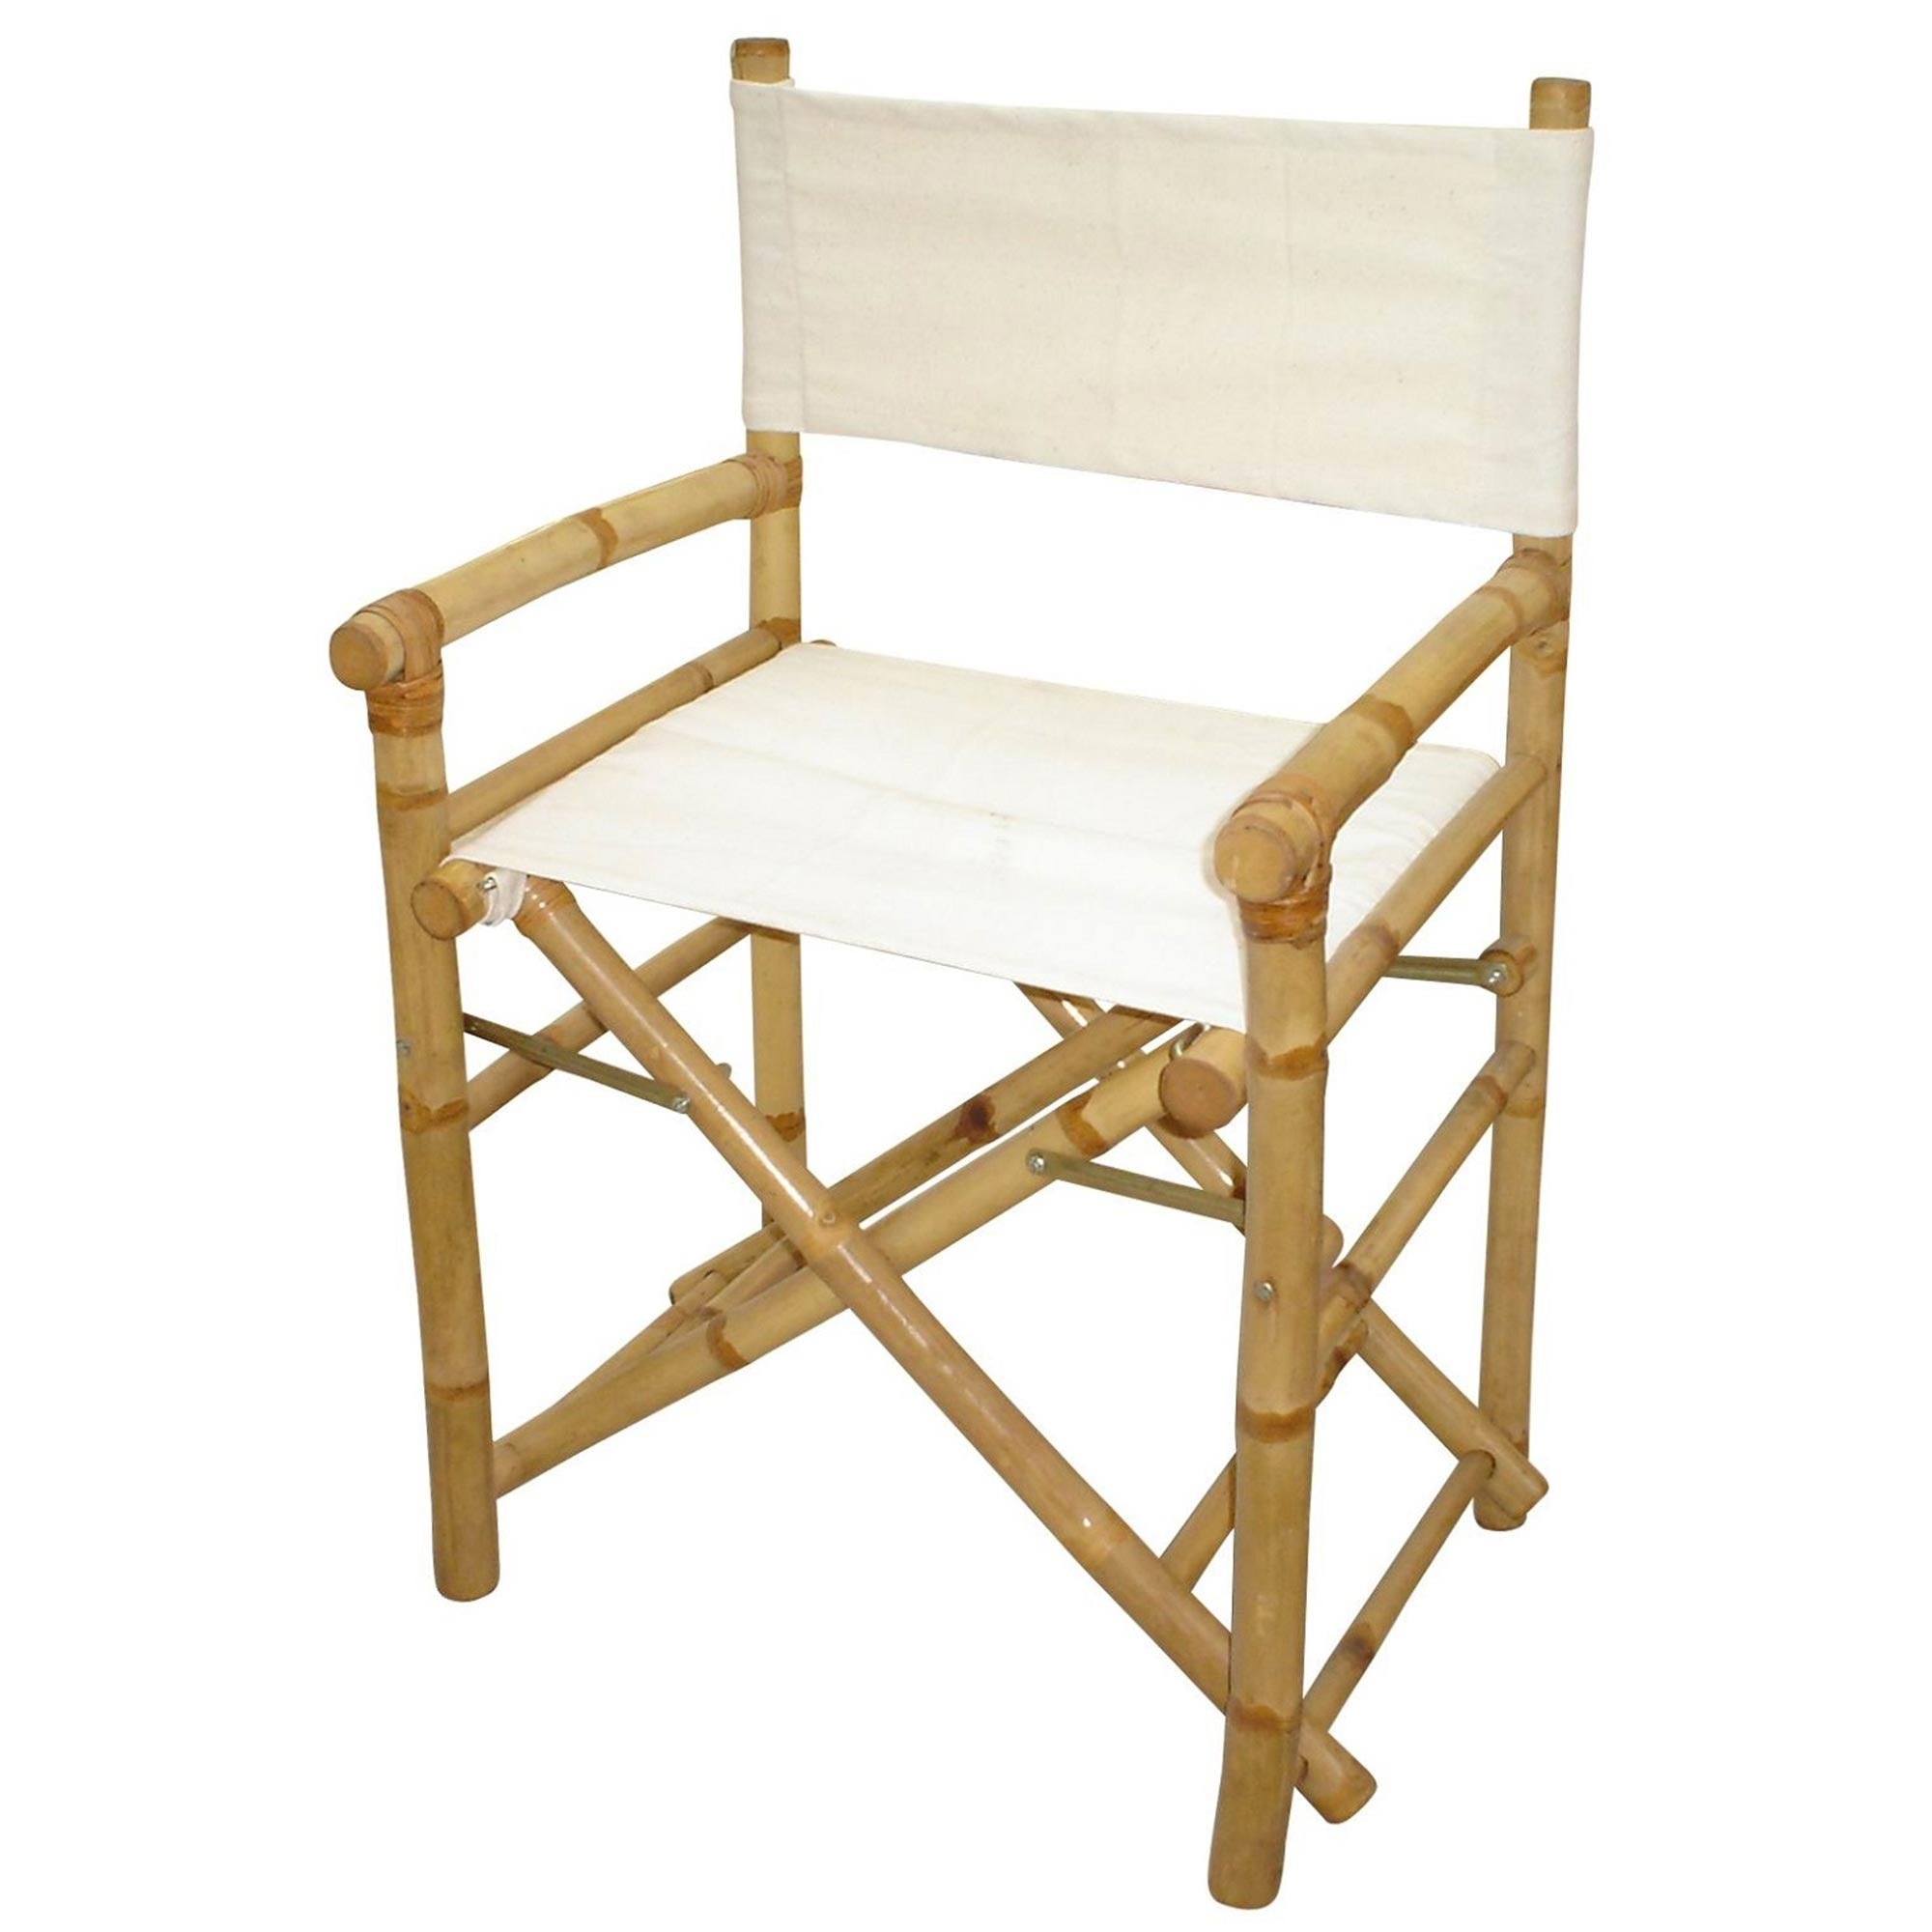 Bamboo Folding Director's Chair (set of 2)